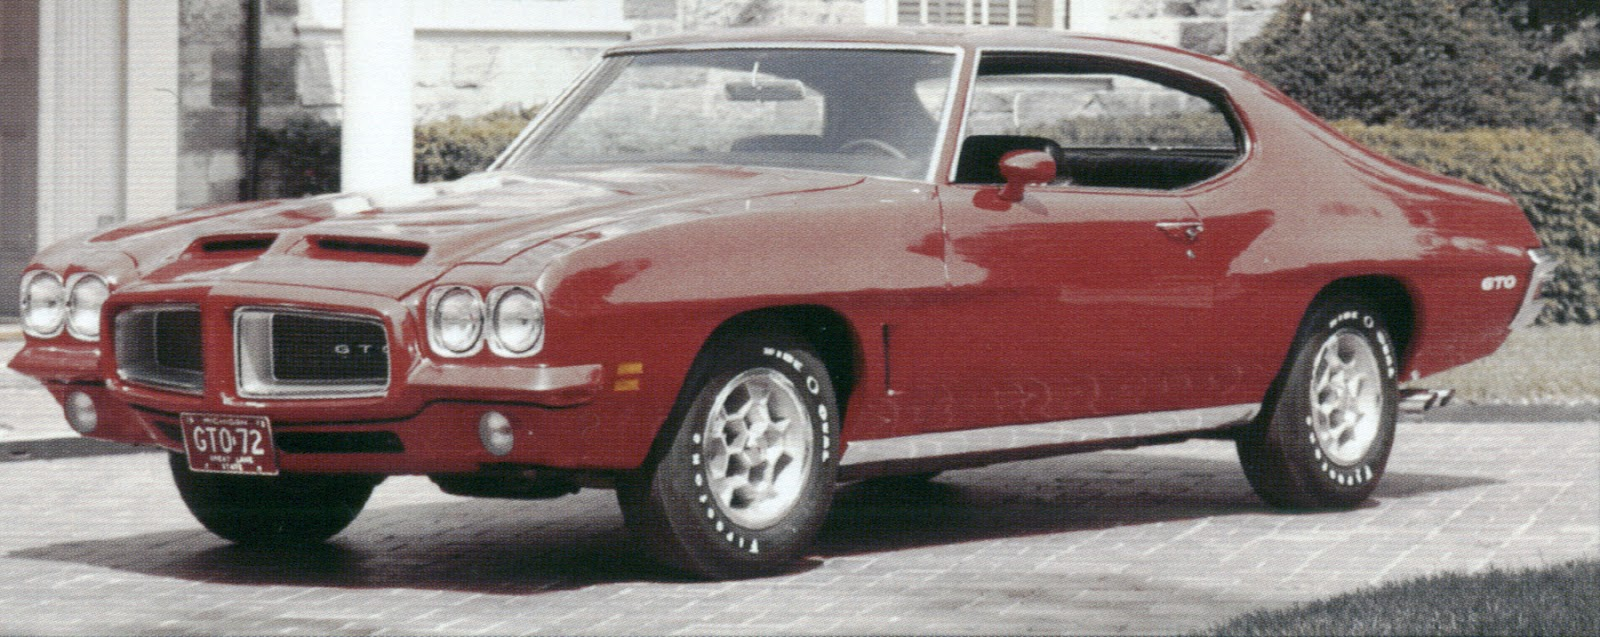 1972 Pontiac GTO: An Indian Summer for Muscle Cars ...